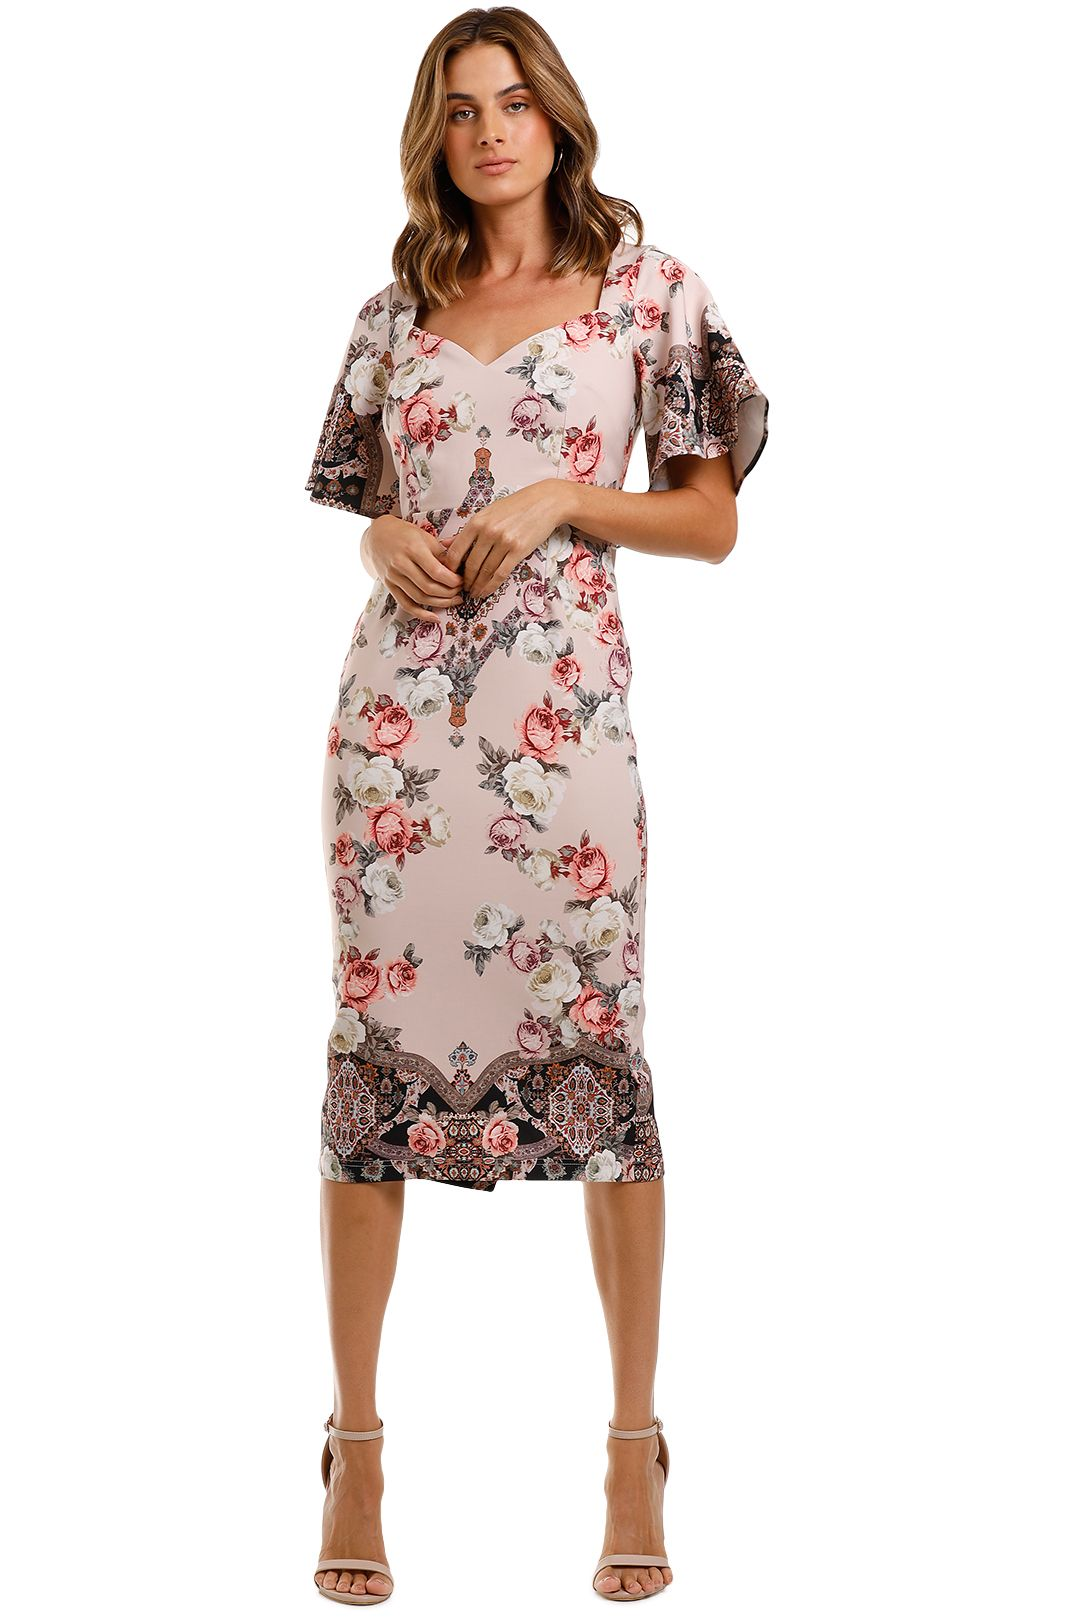 Pasduchas Chichi Sleeve Midi Dress Floral flutter sleeve